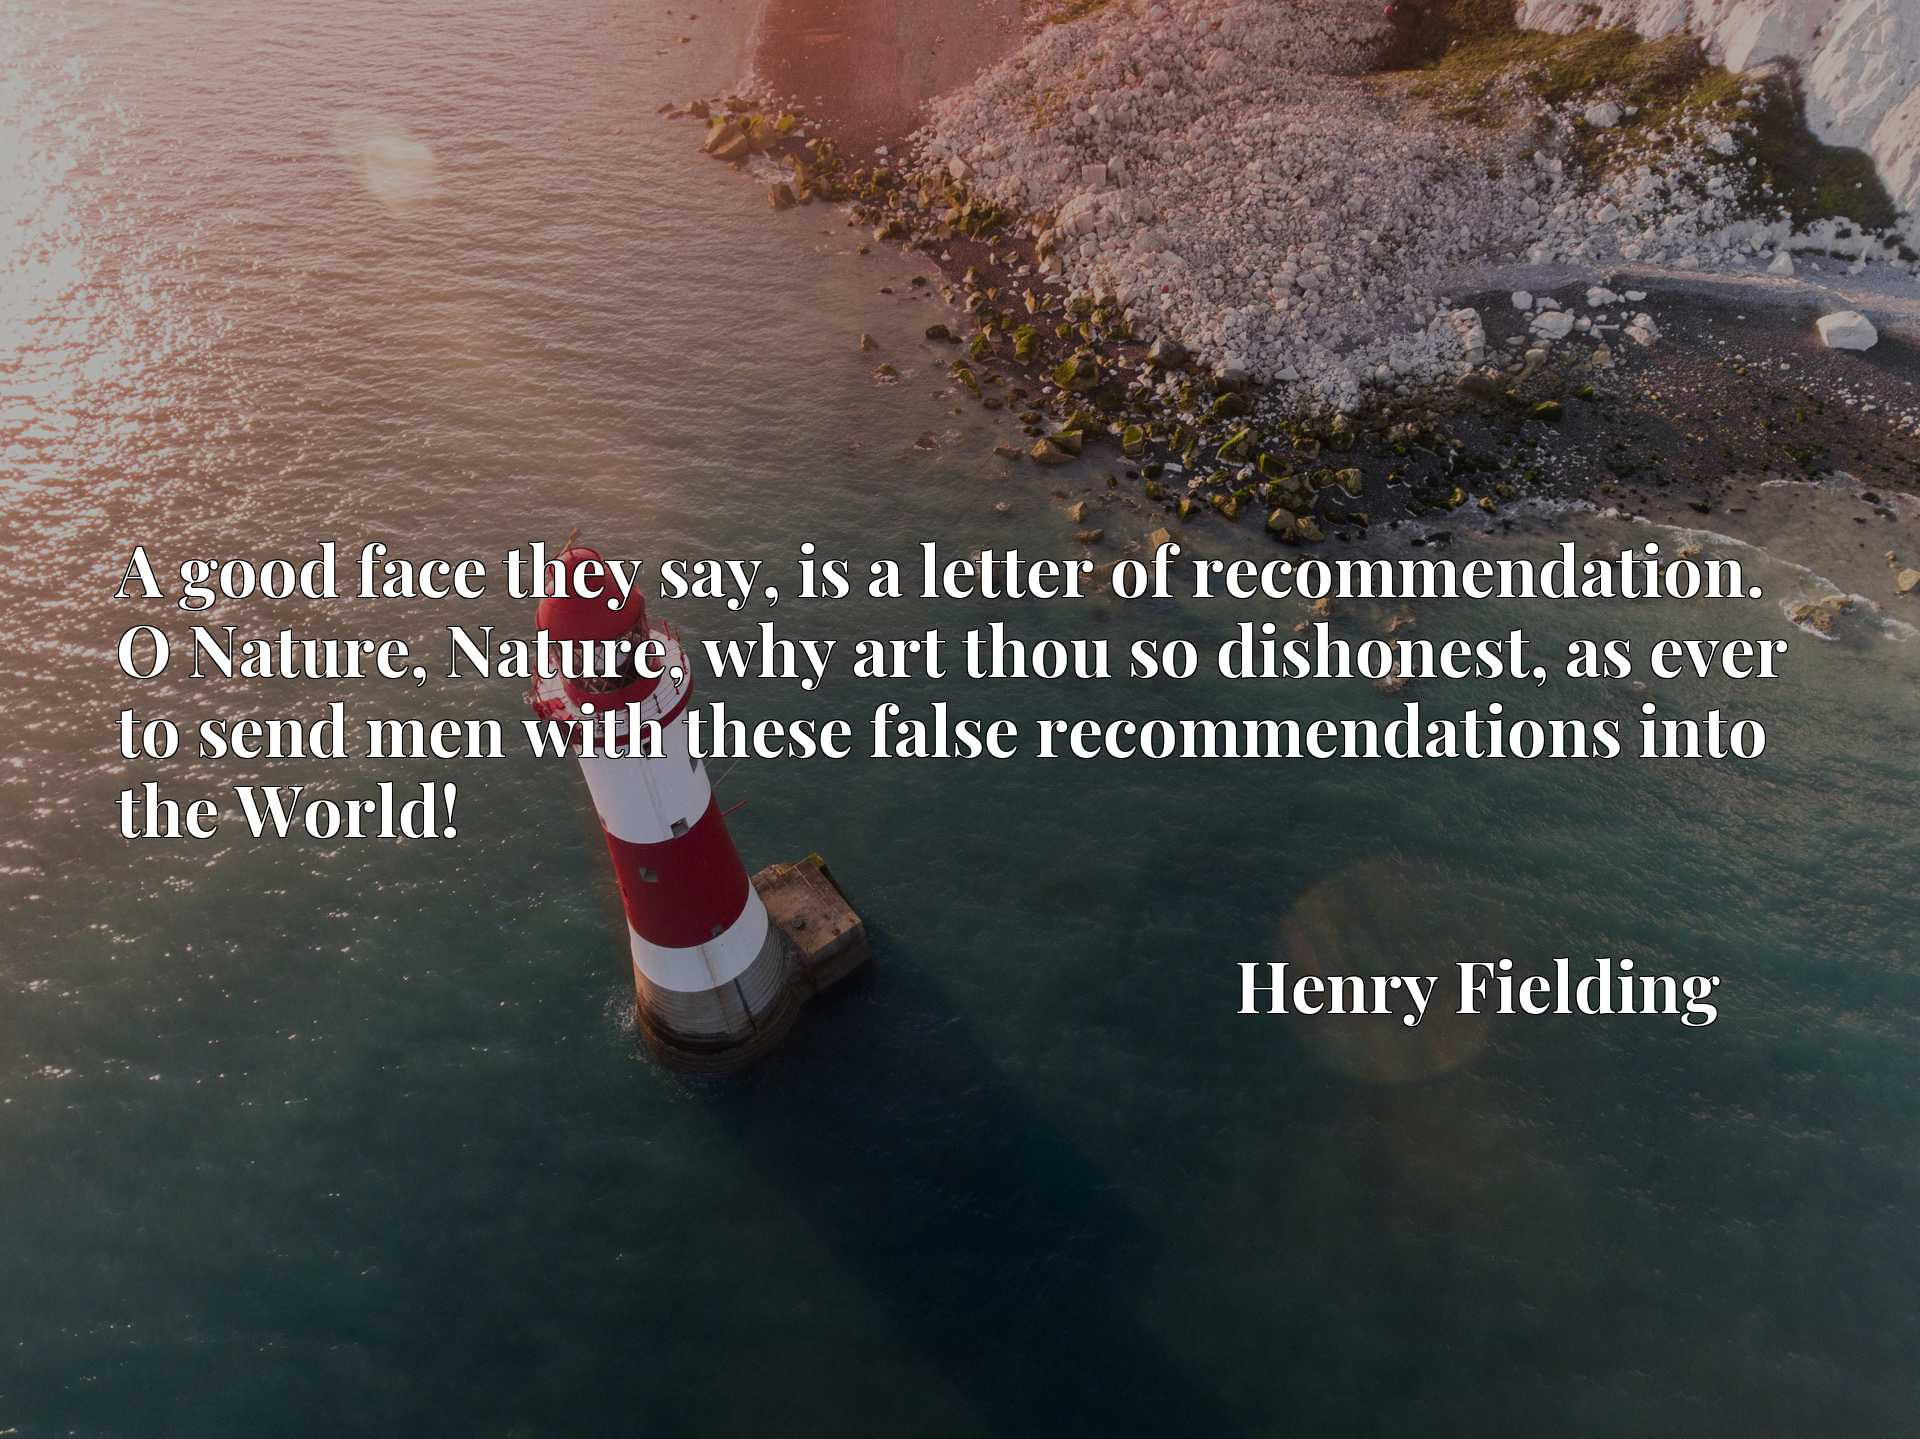 Quote Picture :A good face they say, is a letter of recommendation. O Nature, Nature, why art thou so dishonest, as ever to send men with these false recommendations into the World!